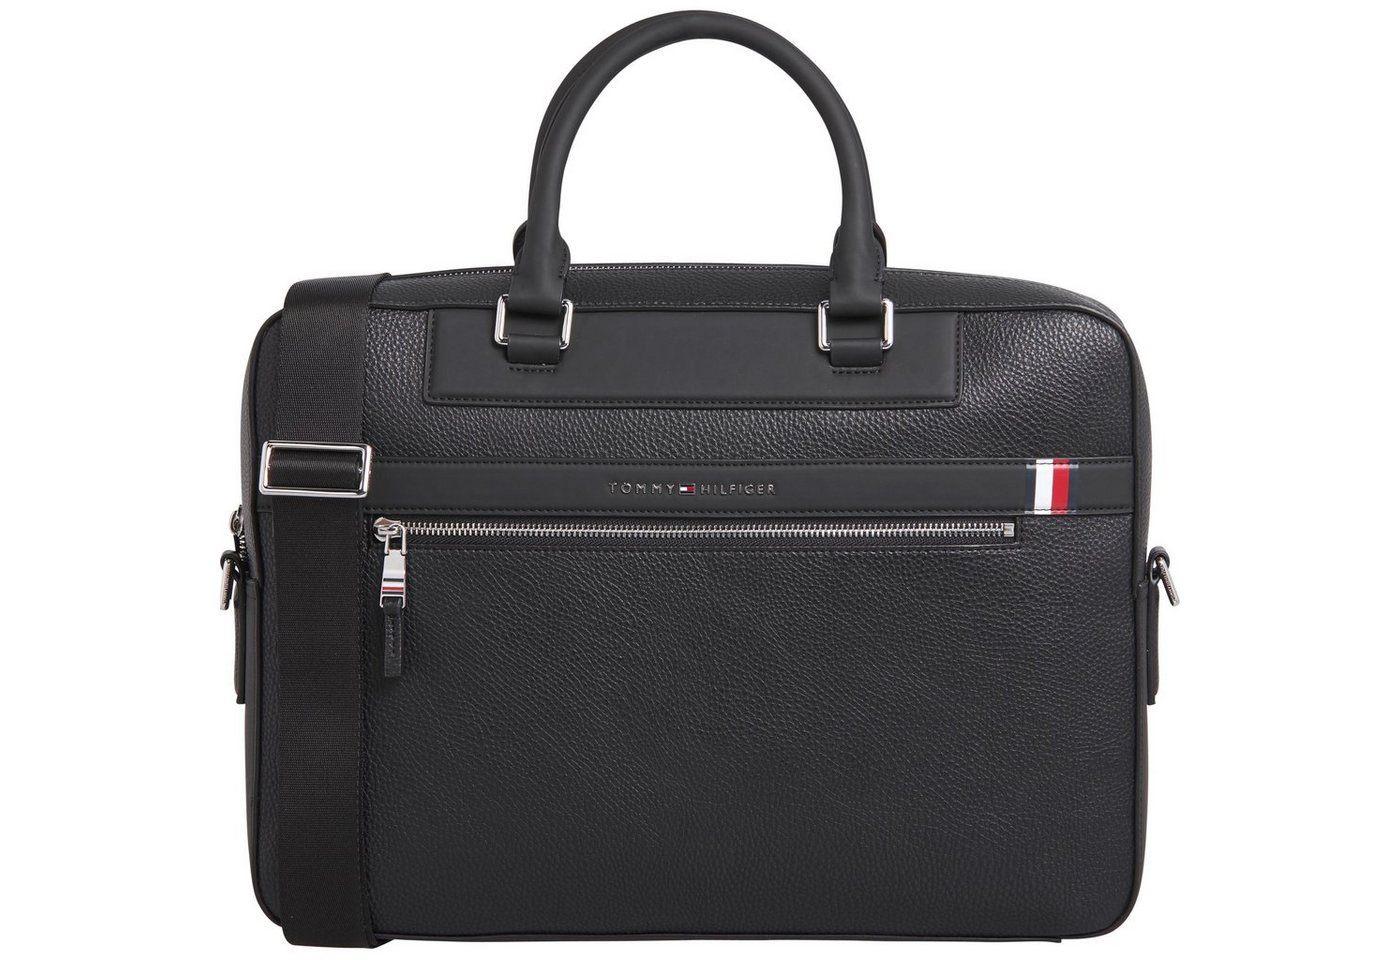 tommy hilfiger -  Messenger Bag »TH DOWNTOWN COMPUTER BAG«, mit praktischer Einteilung